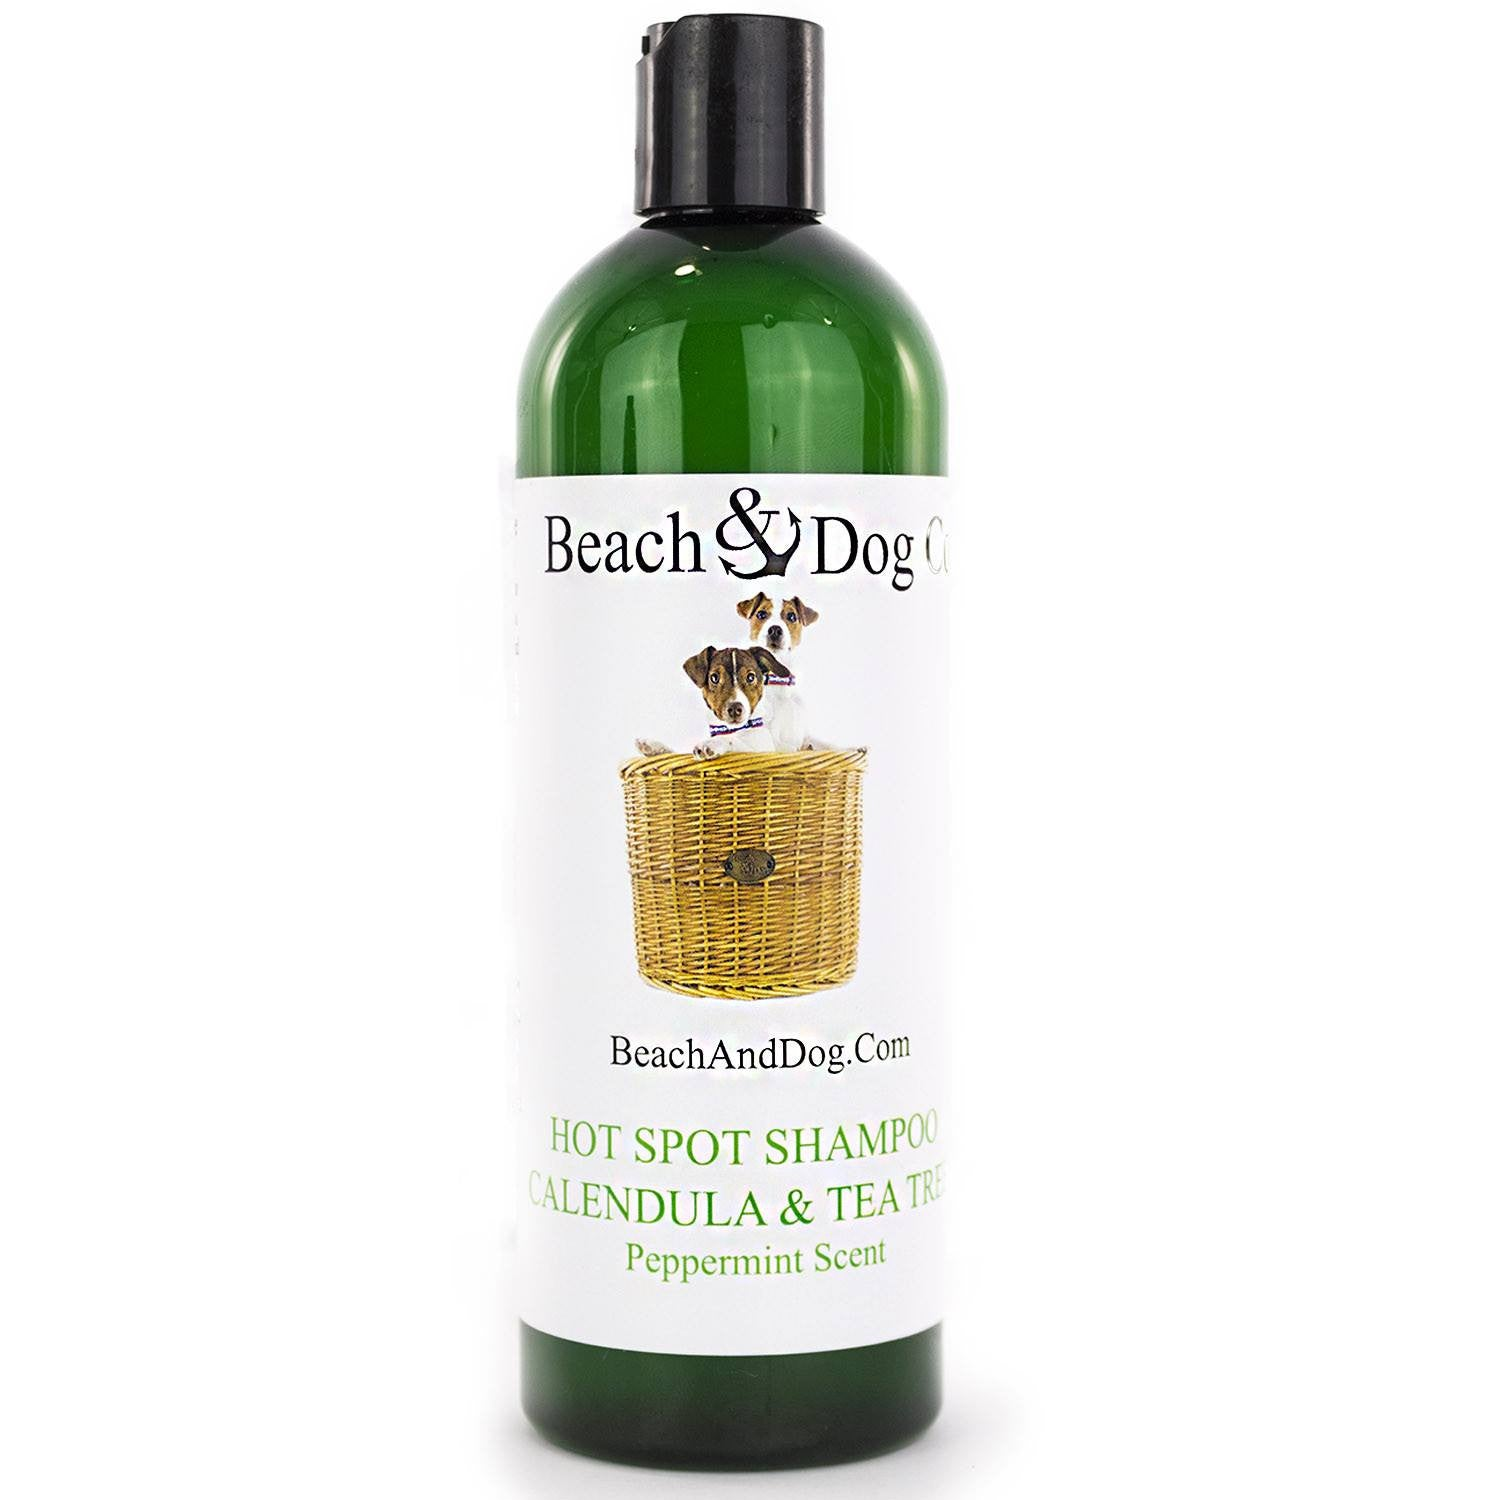 Hot Spot Shampoo (Mint) - All Natural Itch Relief - Beach & Dog Co.